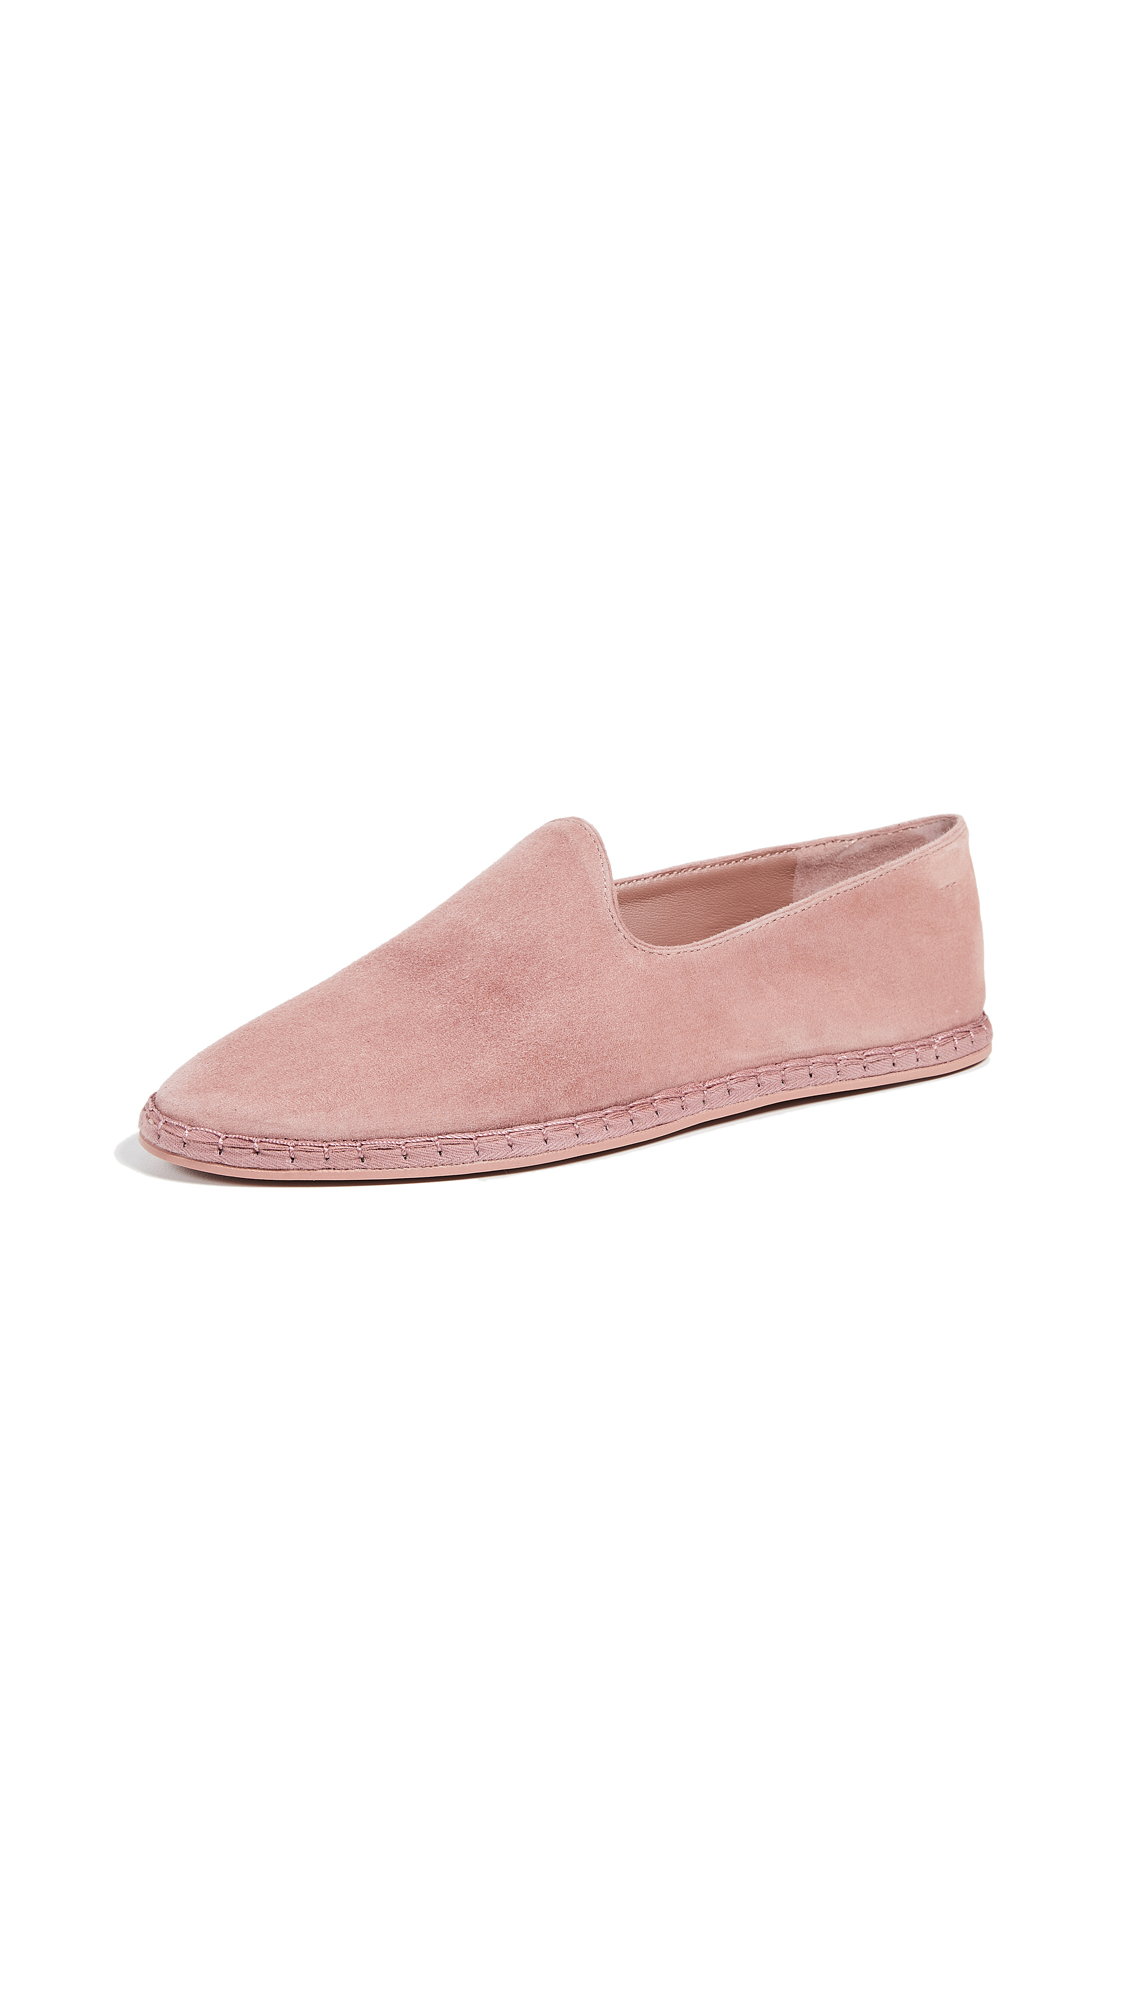 Malia Flat Suede Espadrille Loafers in Antique Rose